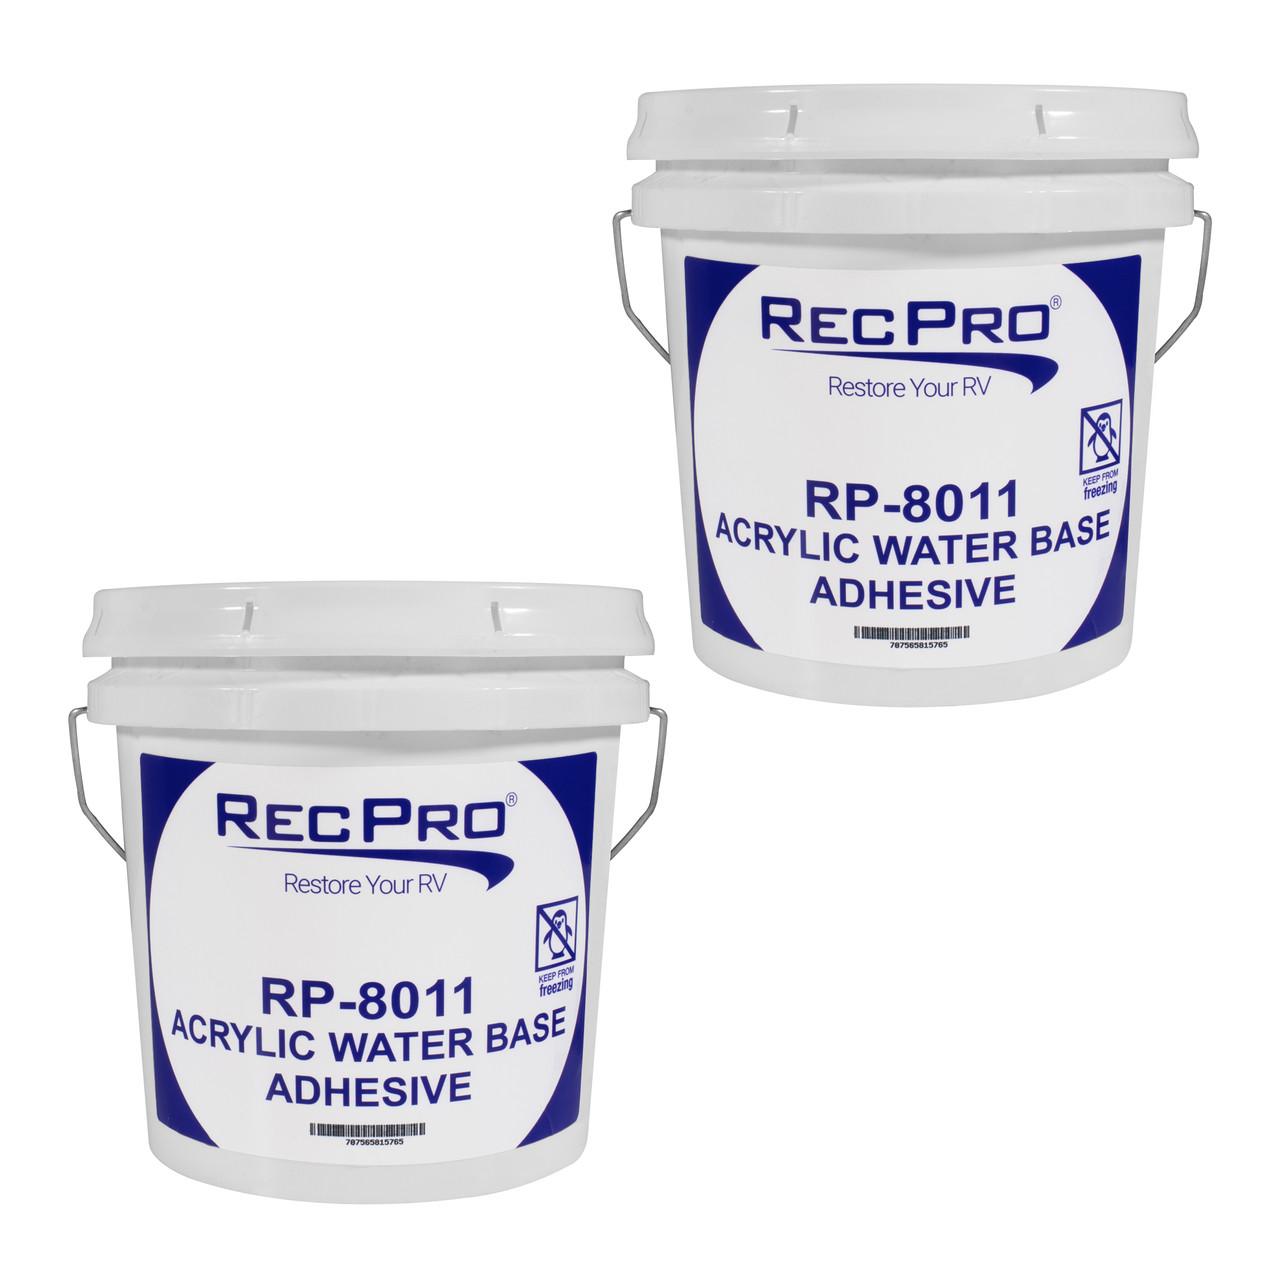 Rubber Roof Adhesive Glue For Rvs Restorerv